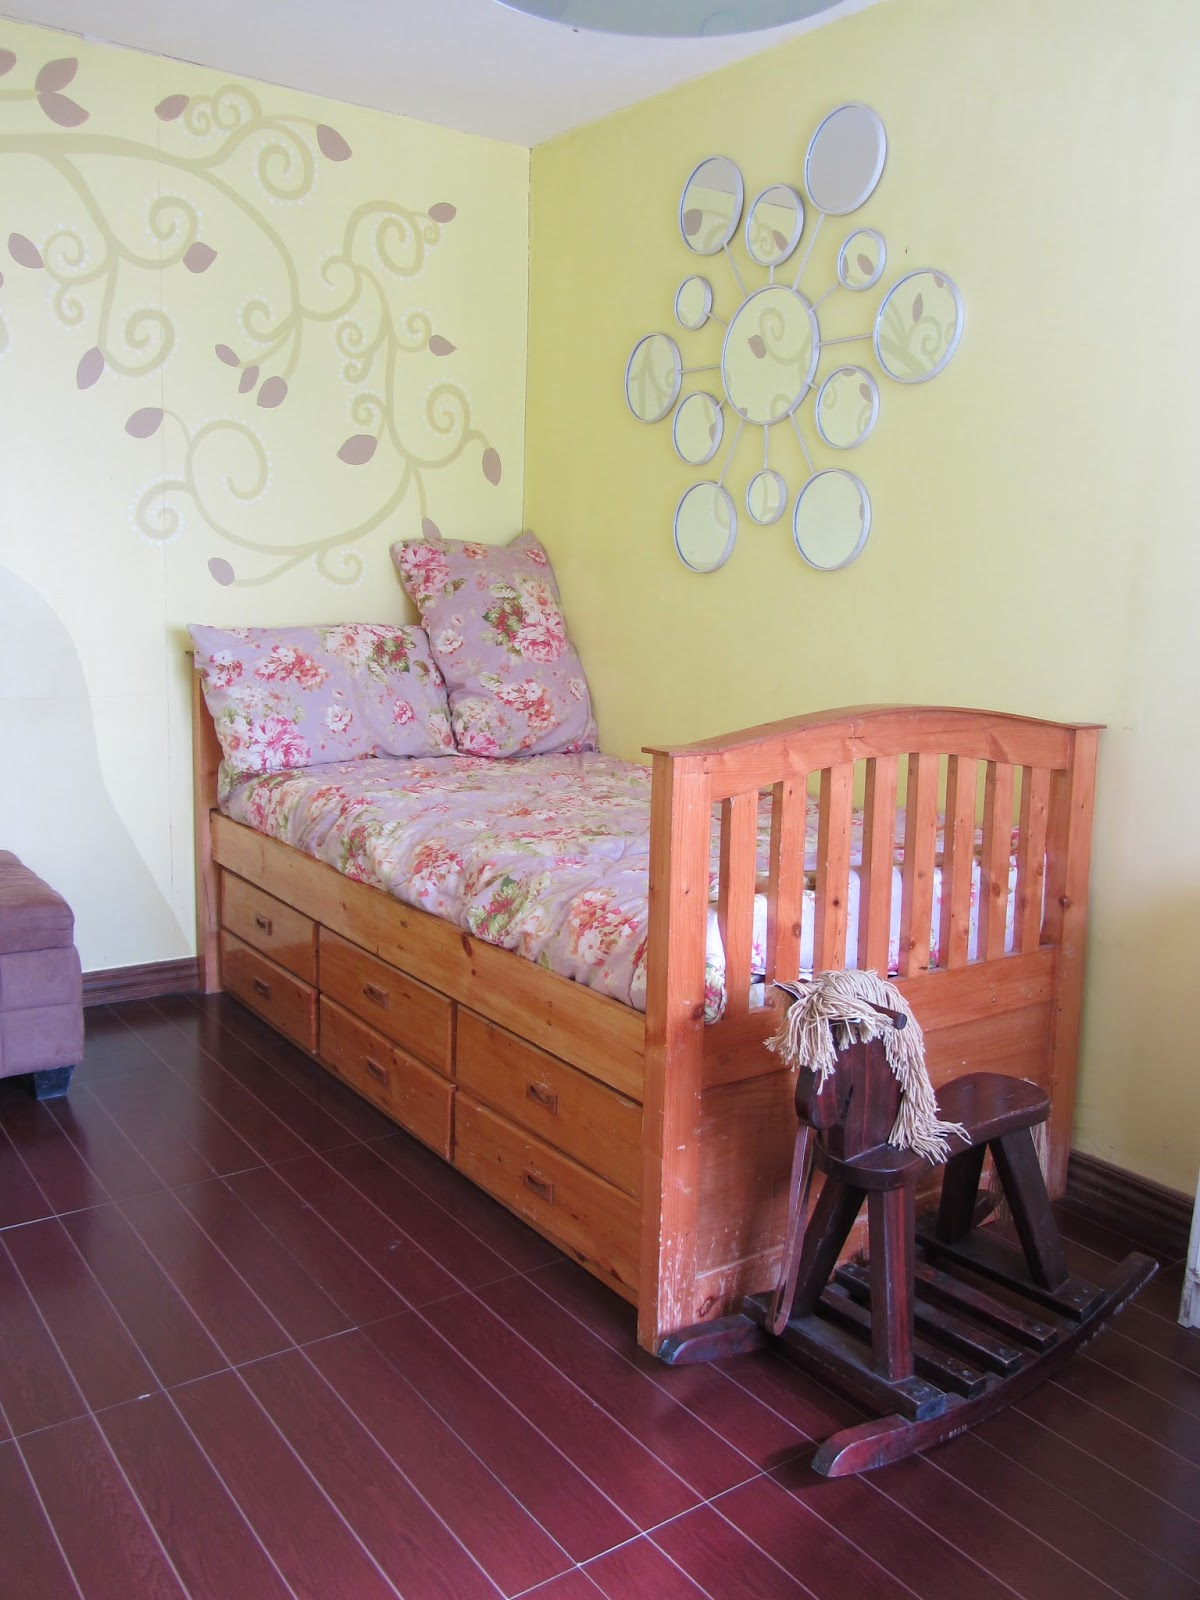 murang pag ibig house and lot deca homes cavite bella vista dressedup. Cheap Rent To Own Homes  Image 6  Renttoown Homes  Offers